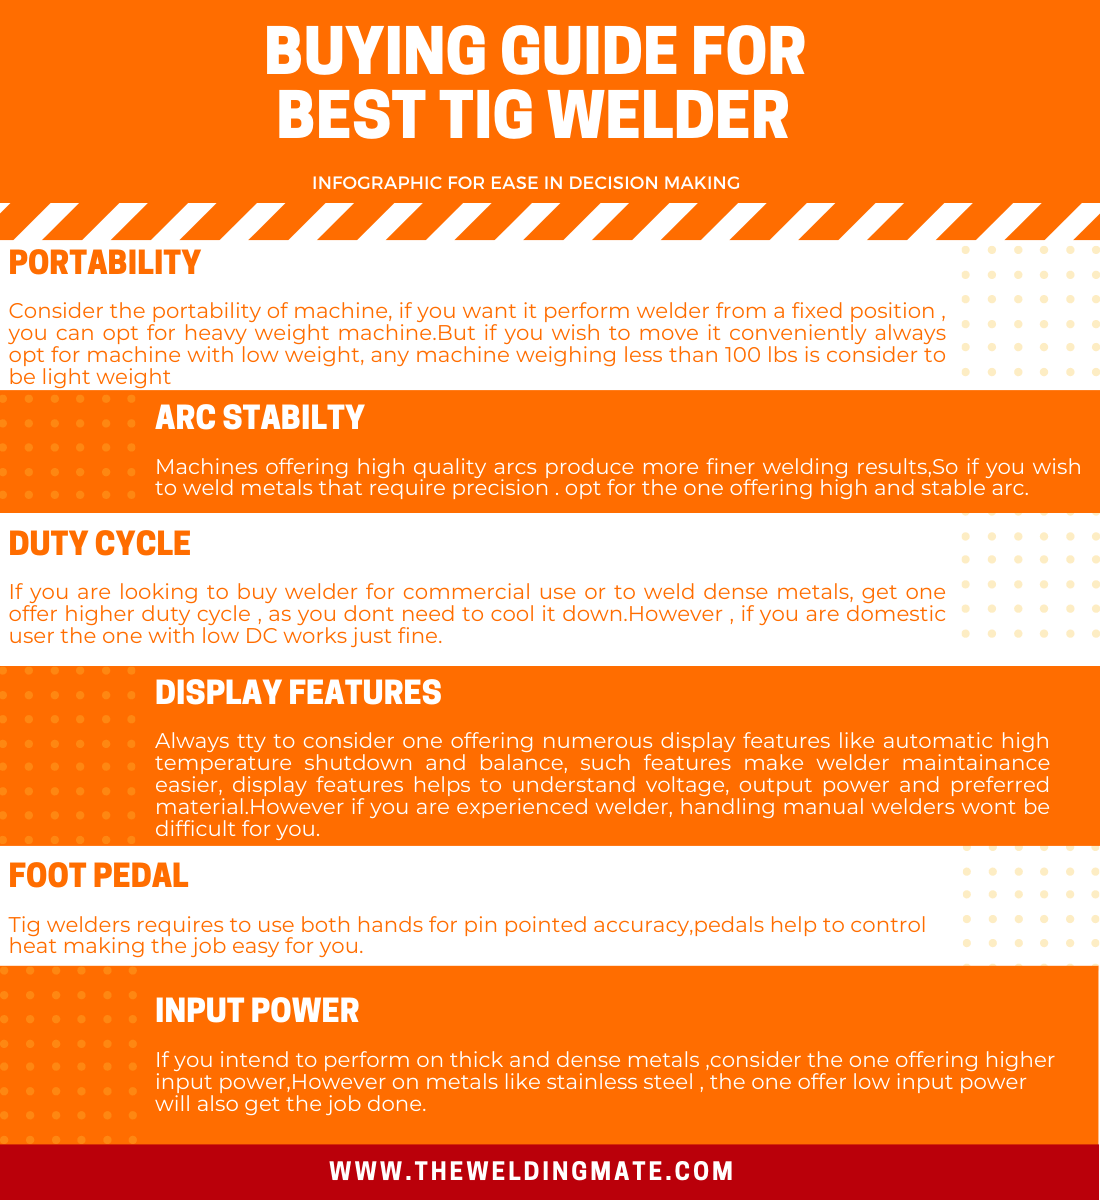 Best tig welder infographic